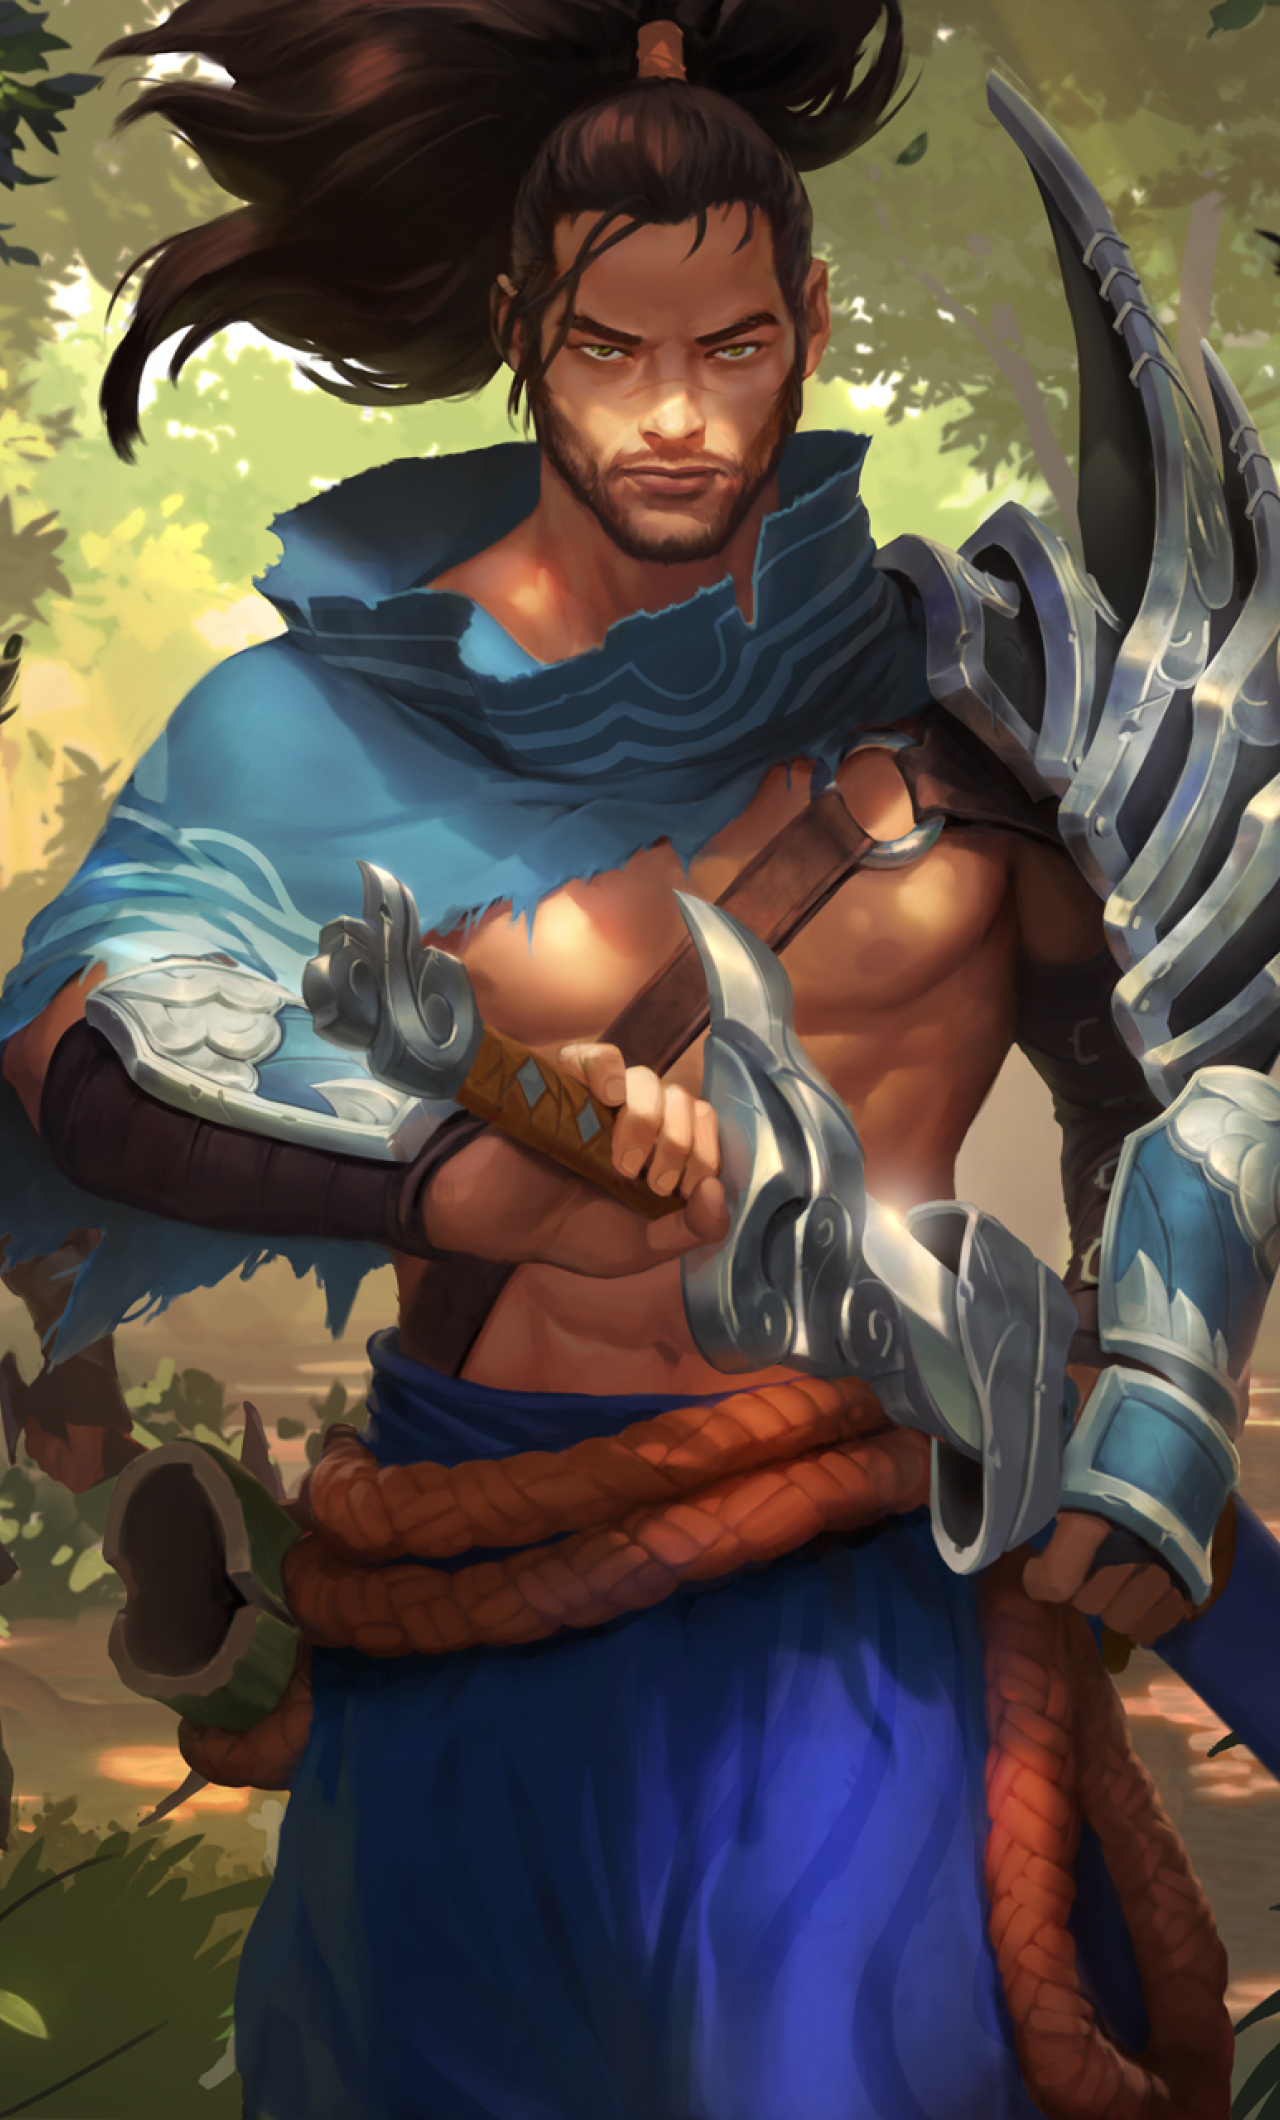 1280x2120 Yasuo League Of Legends Iphone 6 Plus Wallpaper Hd Games 4k Wallpapers Images Photos And Background